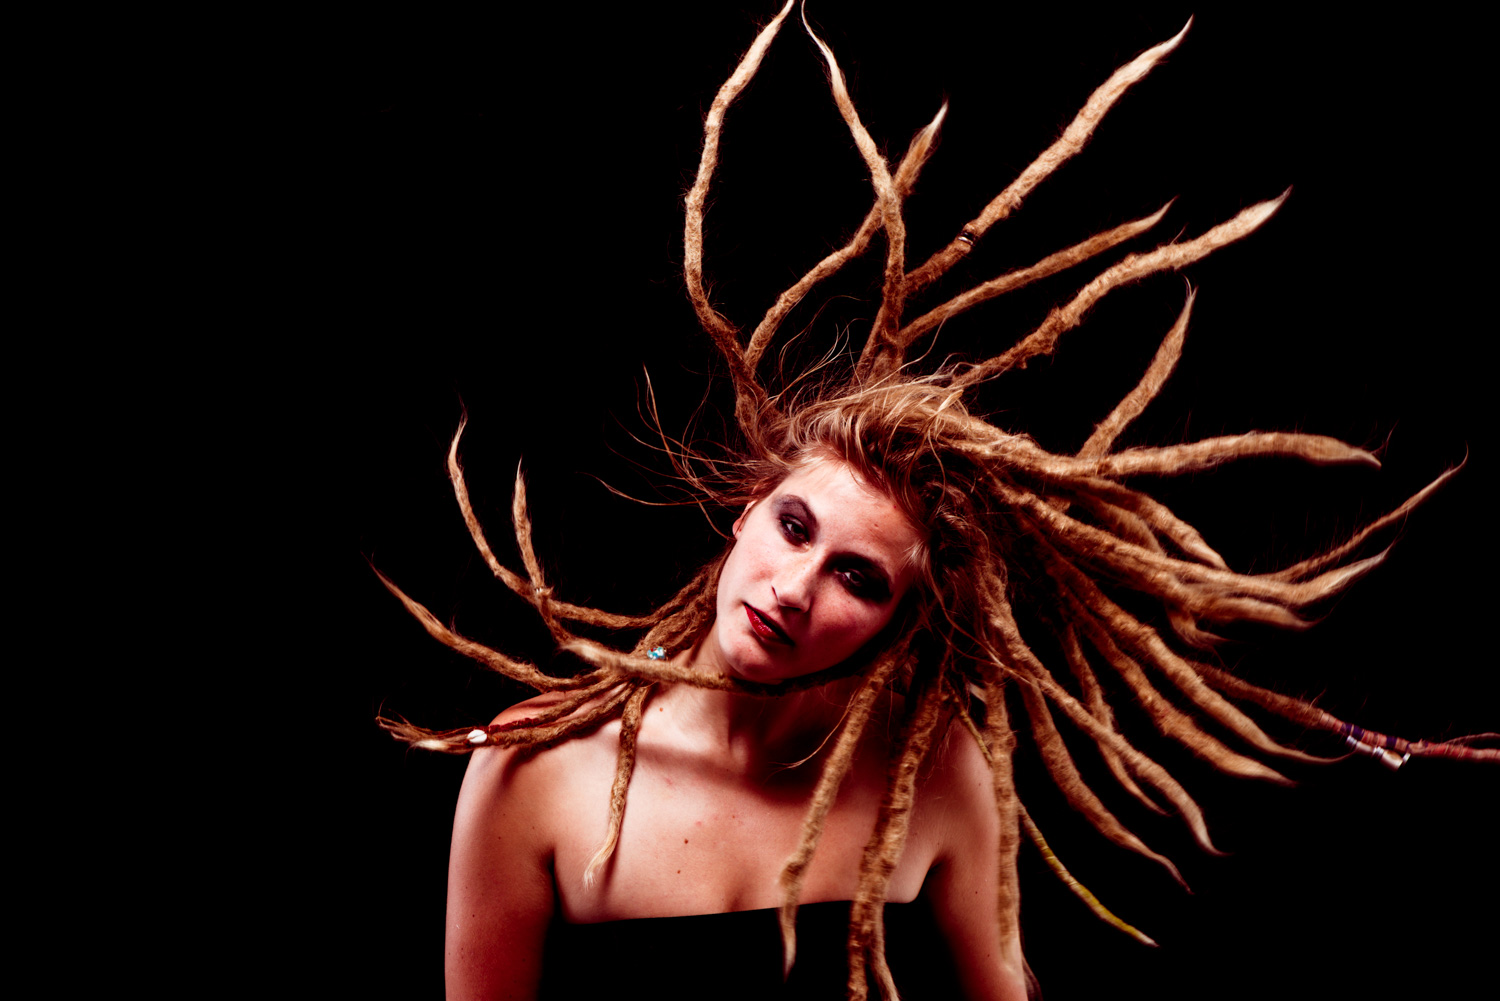 Dreadlocks 15 Common Portrait Mistakes to Avoid